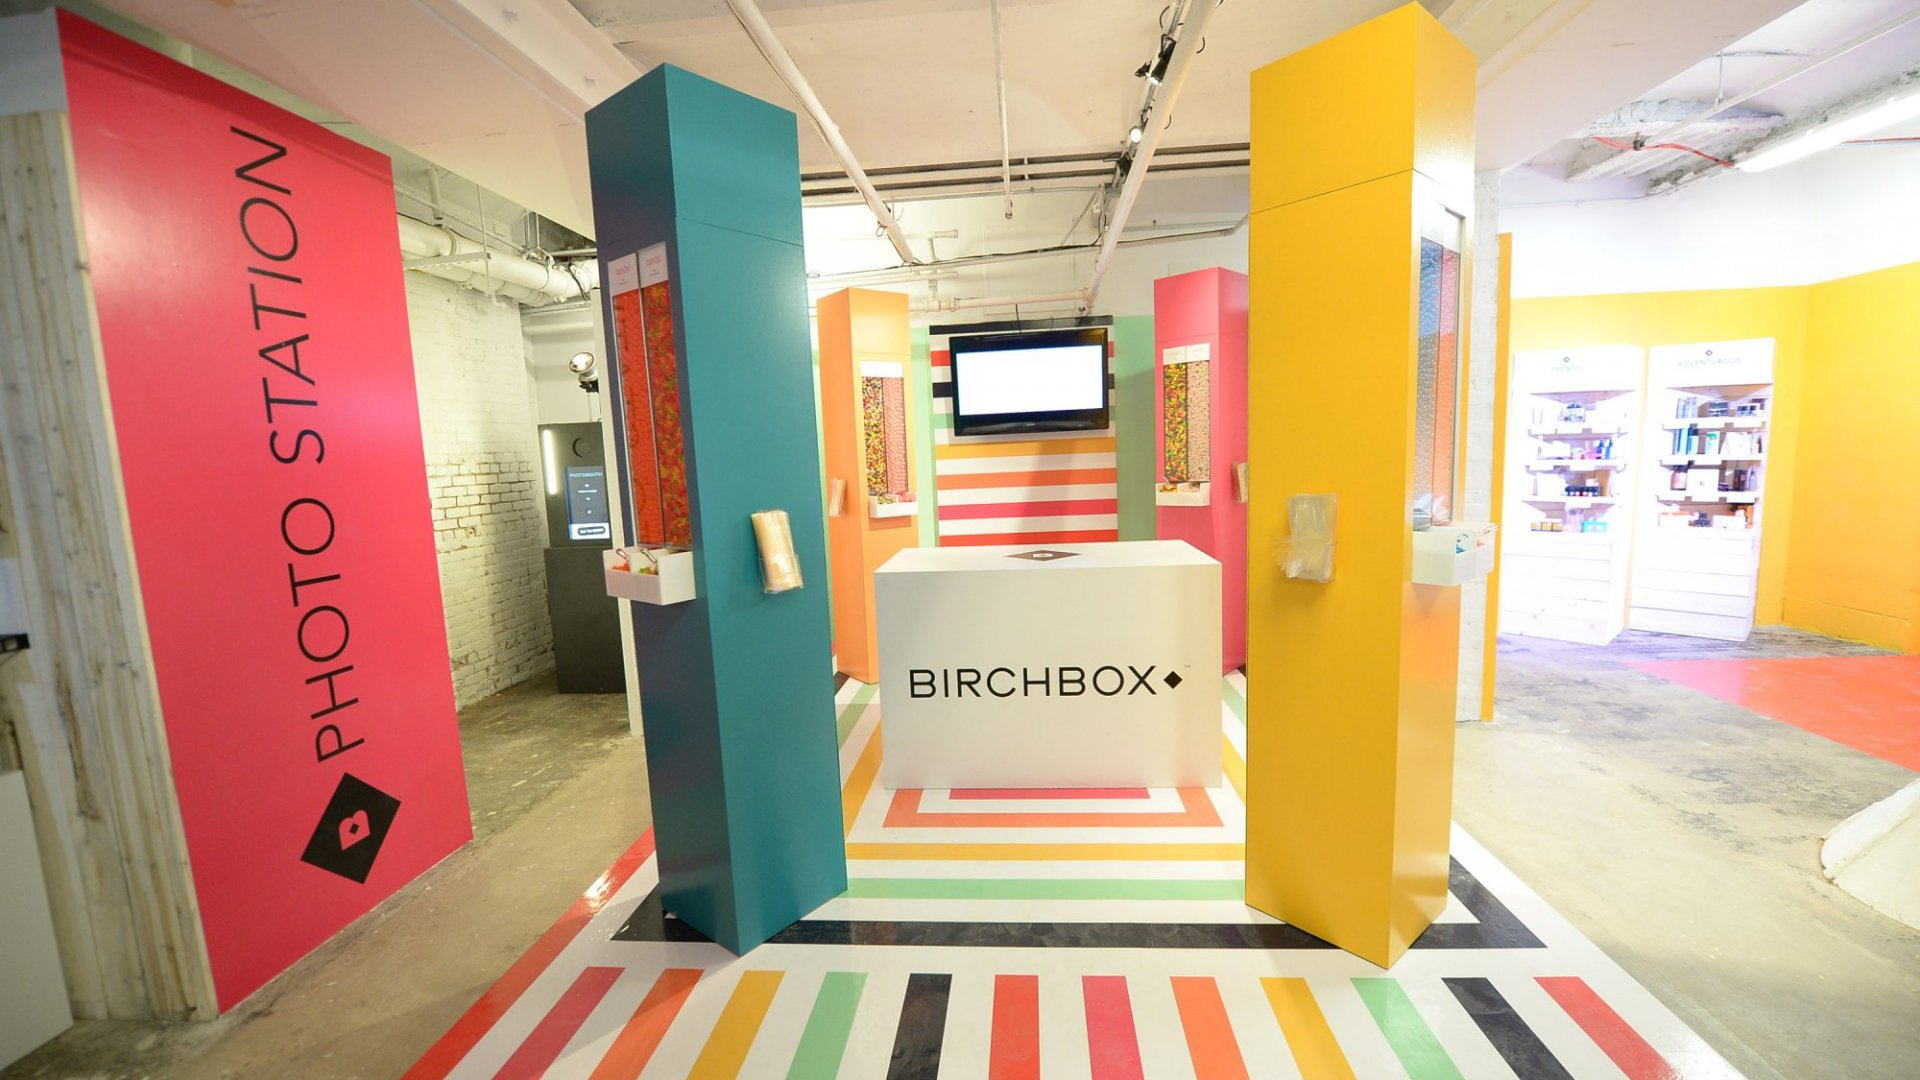 Inside the Box: An Exclusive Interview with Birchbox Co-Founder Mollie Chen